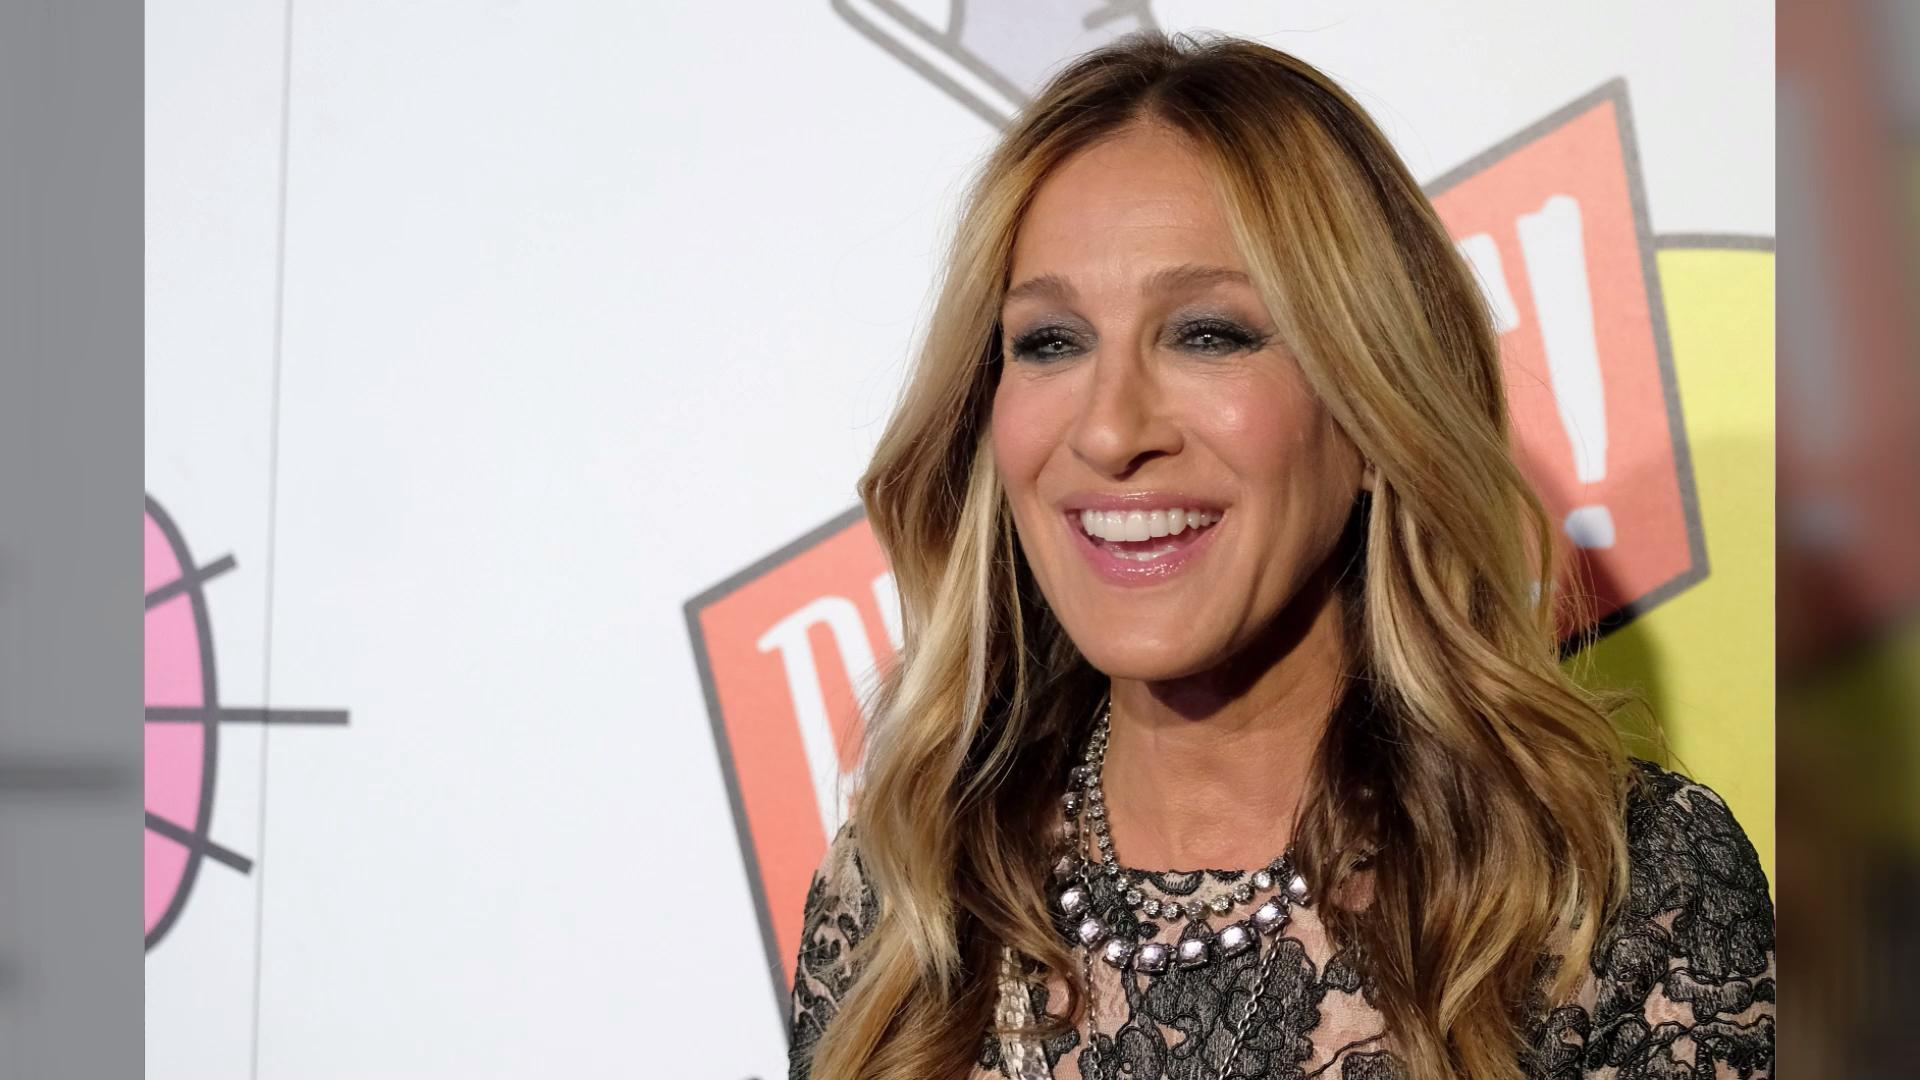 Sarah Jessica Parker Was Brought to Tears After Producers